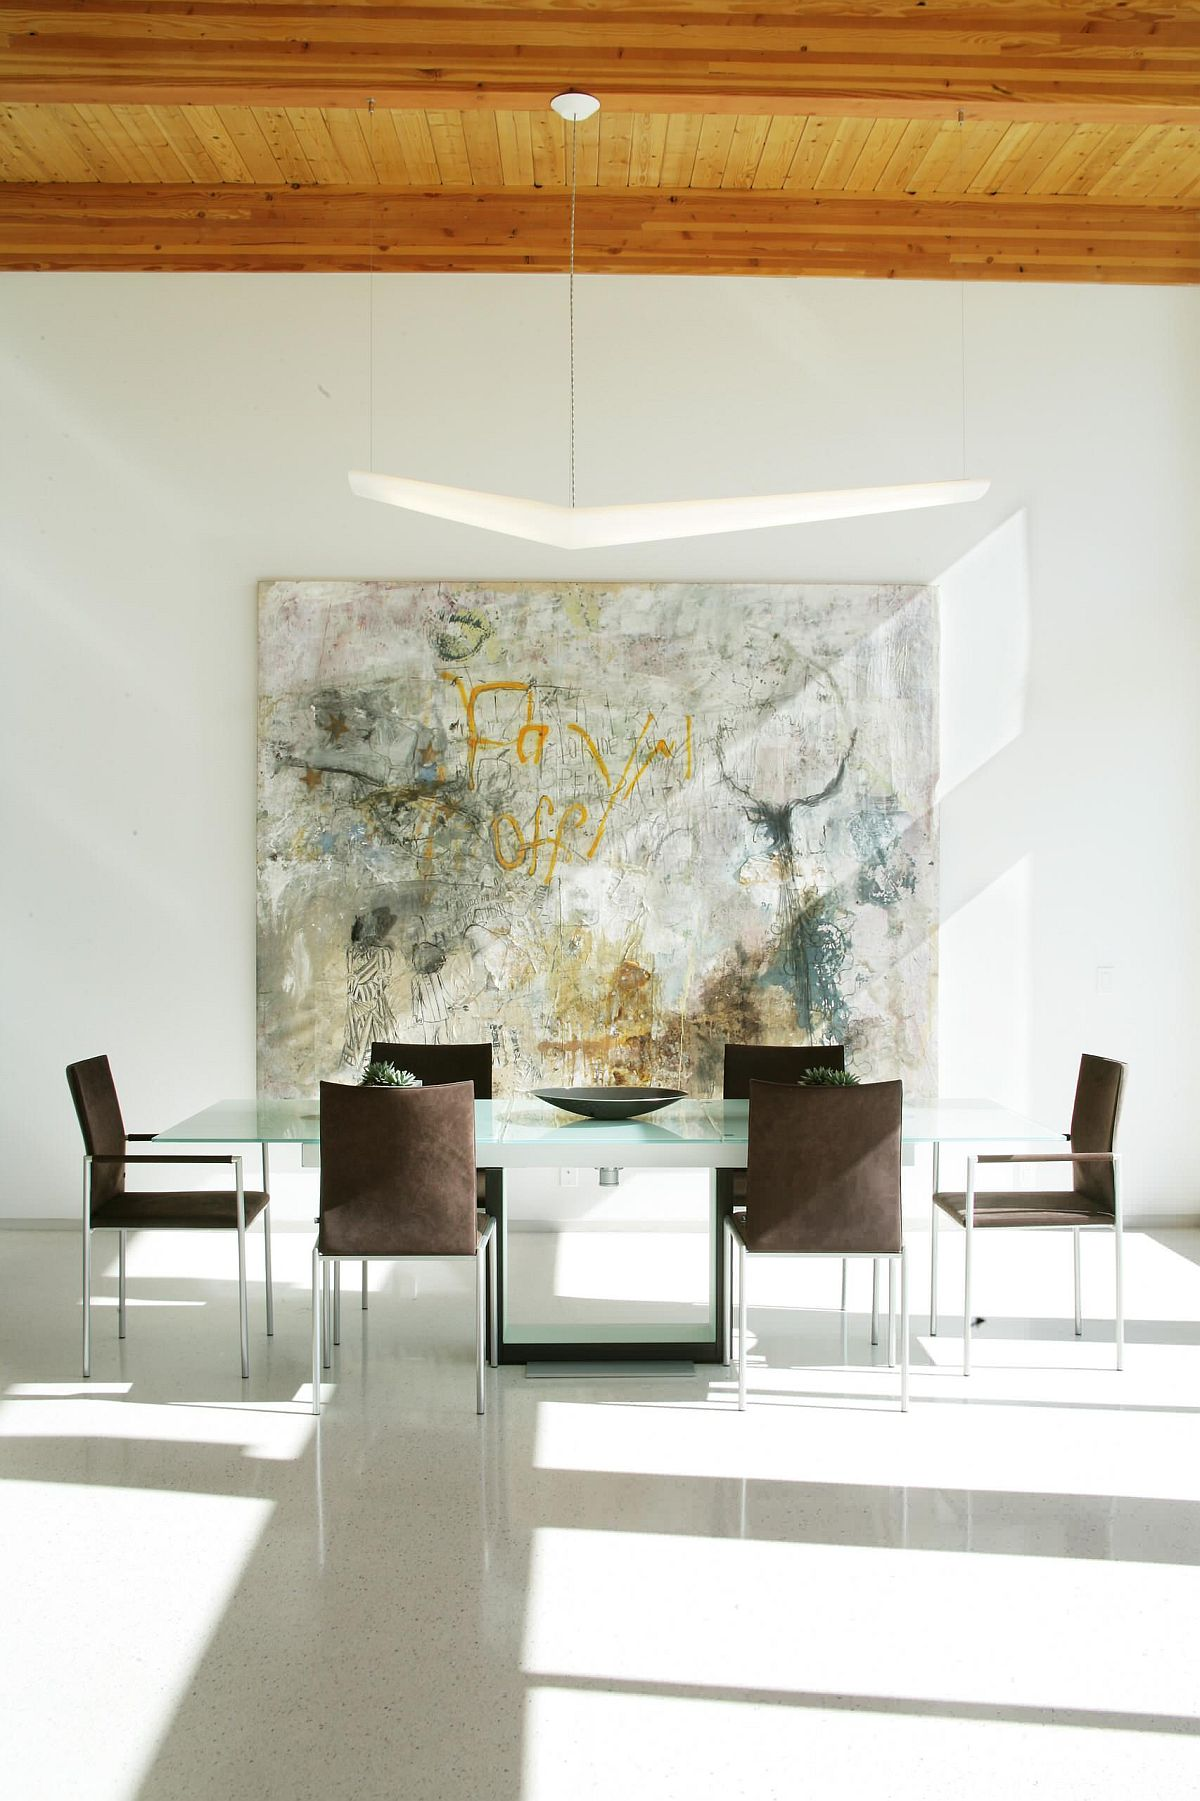 Graffiti brought into the minimal dining room to create more visual interest